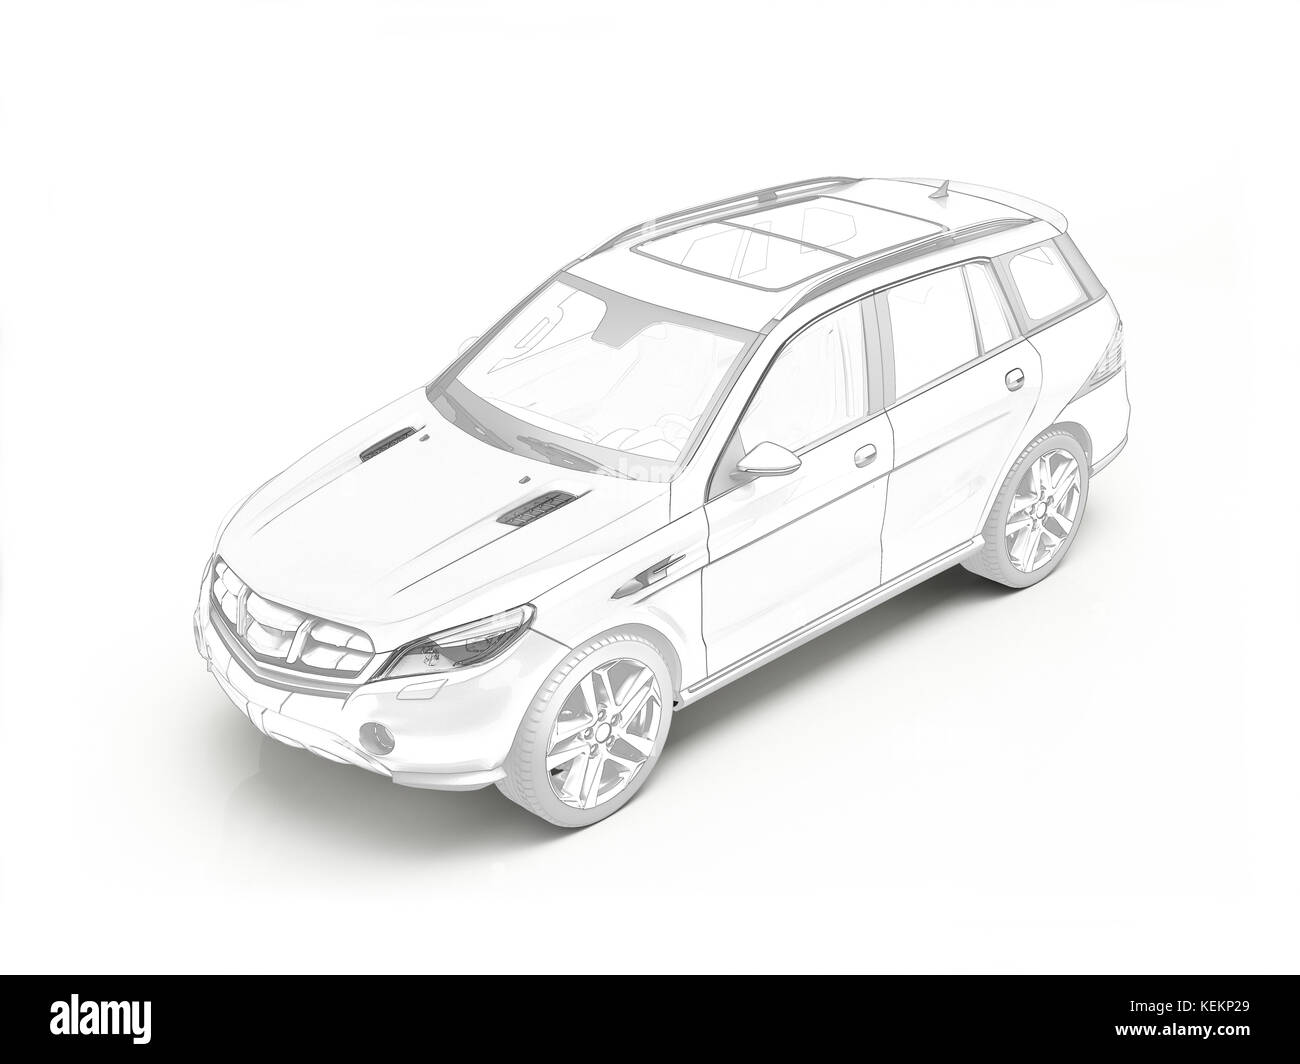 Suv car black line drawing - Stock Image